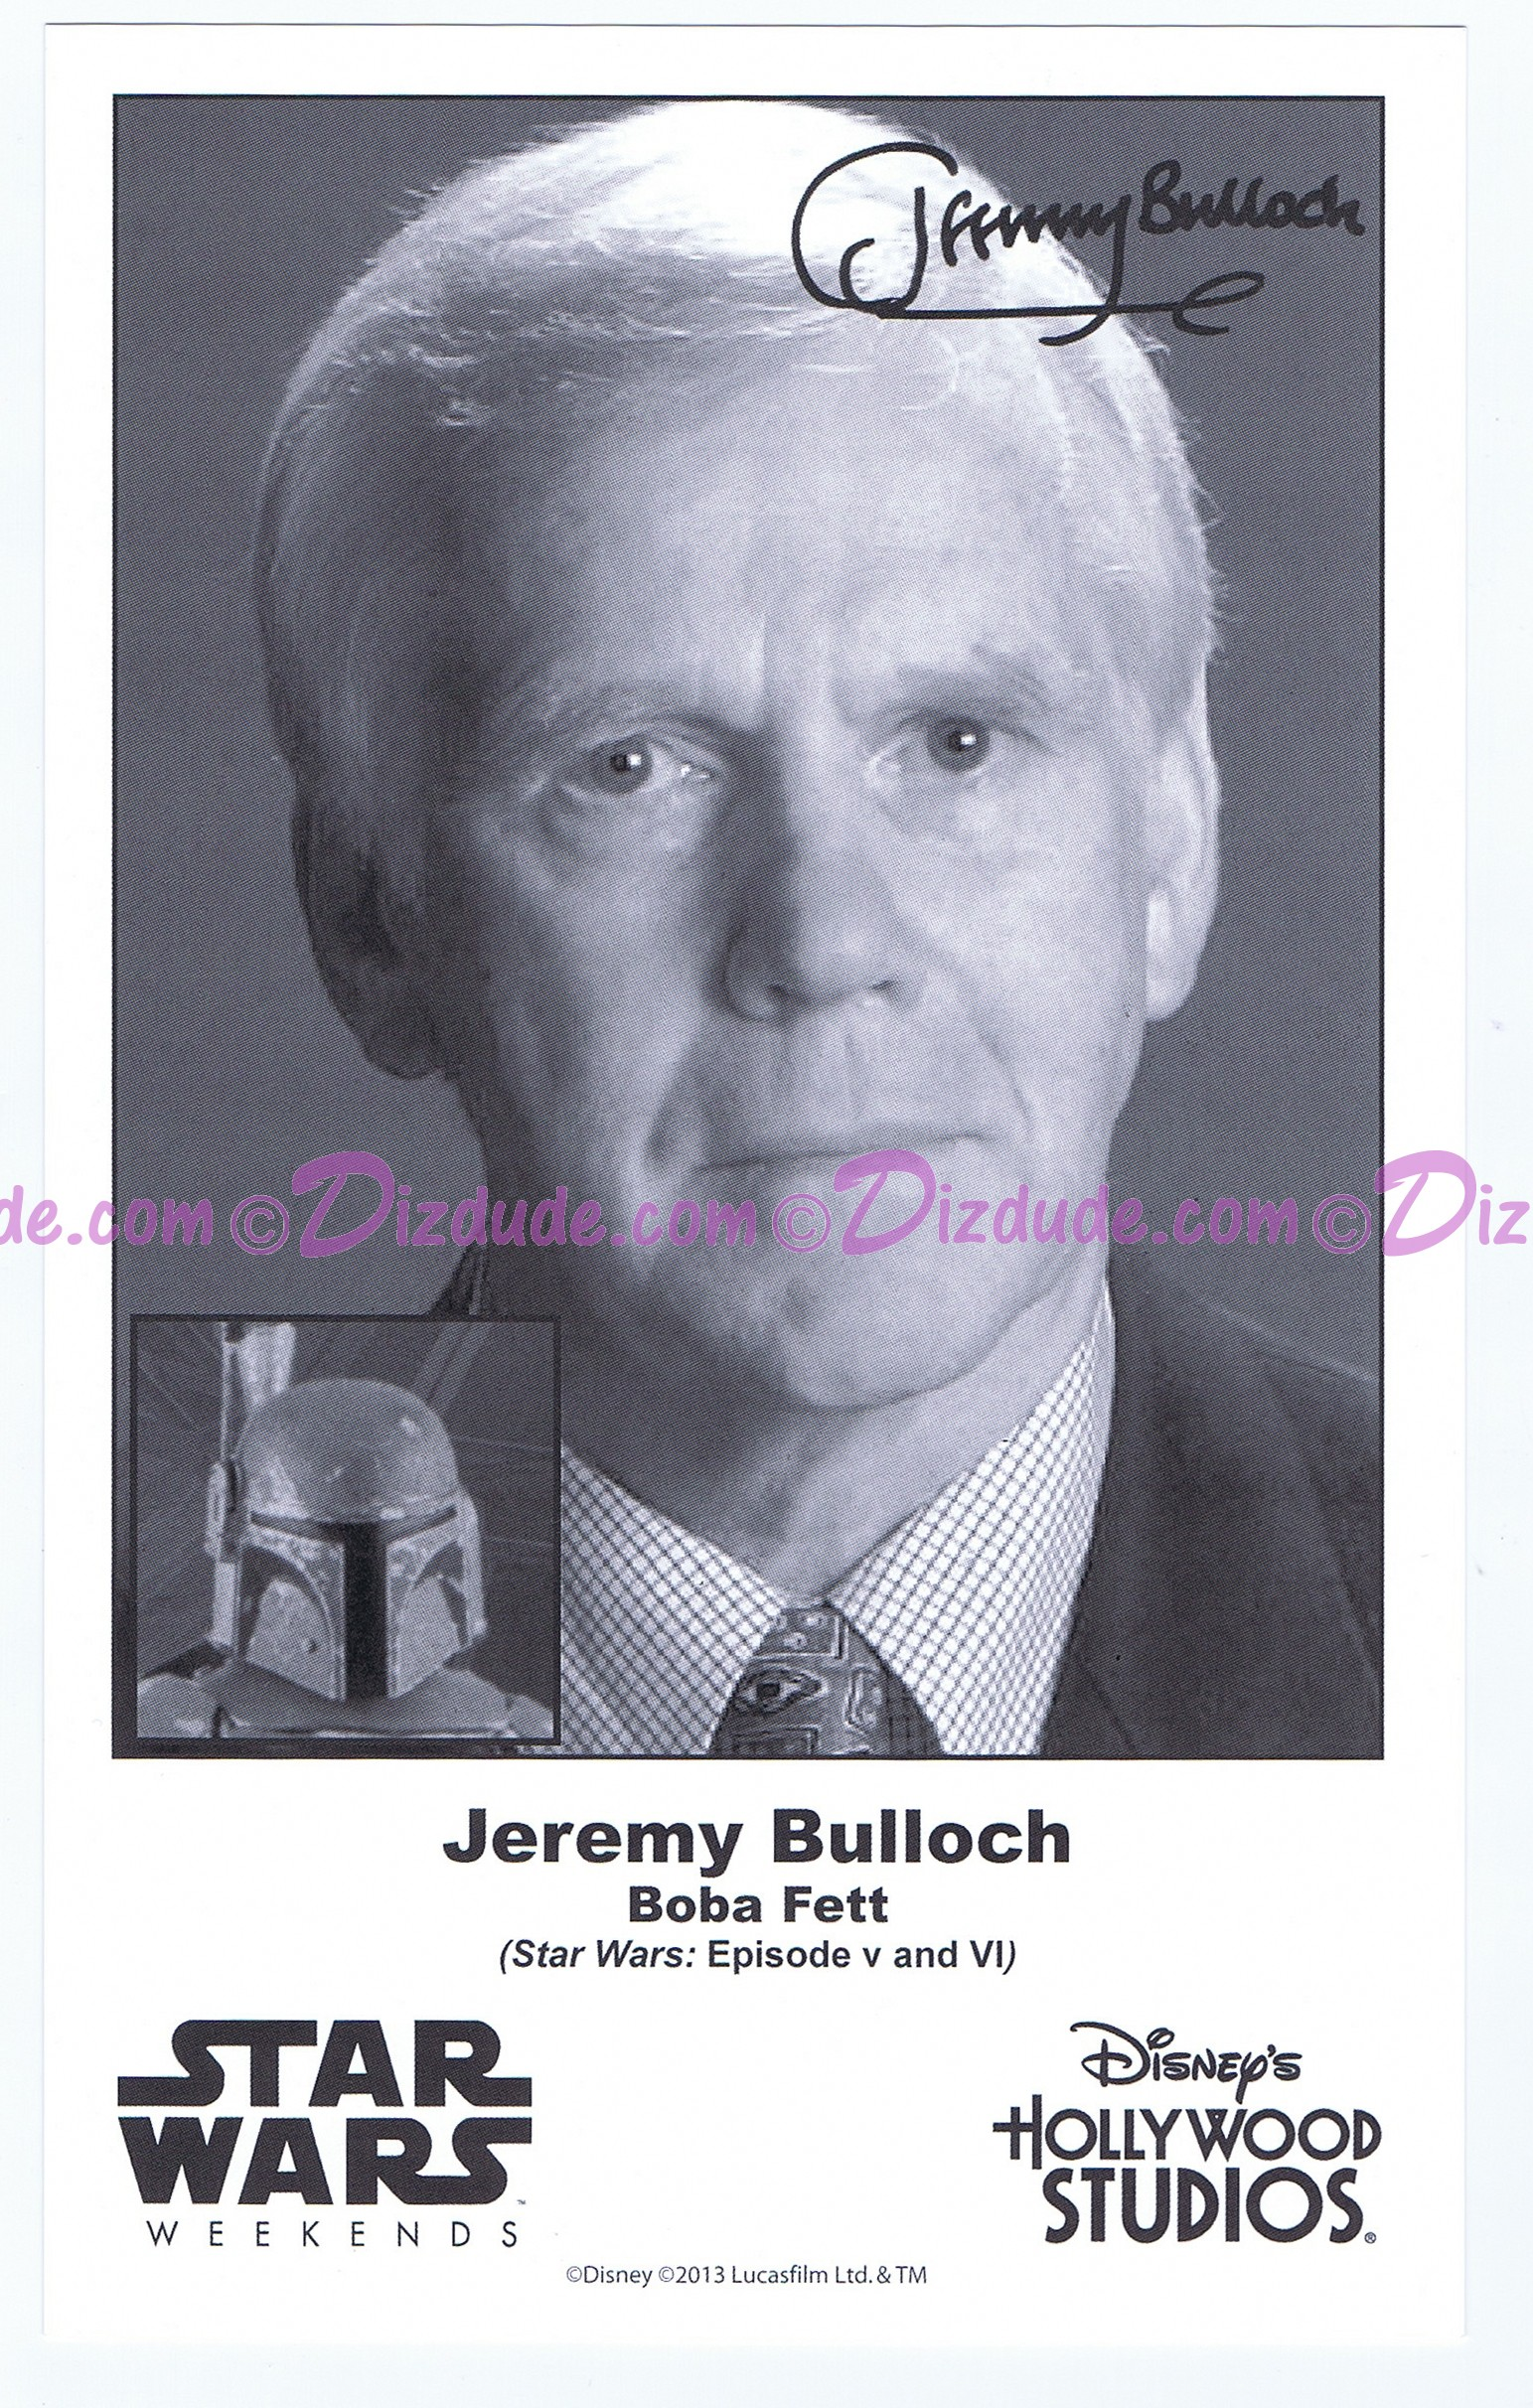 Jeremy Bulloch who played Boba Fett Presigned Official Star Wars Weekends 2013 Celebrity Collector Photo